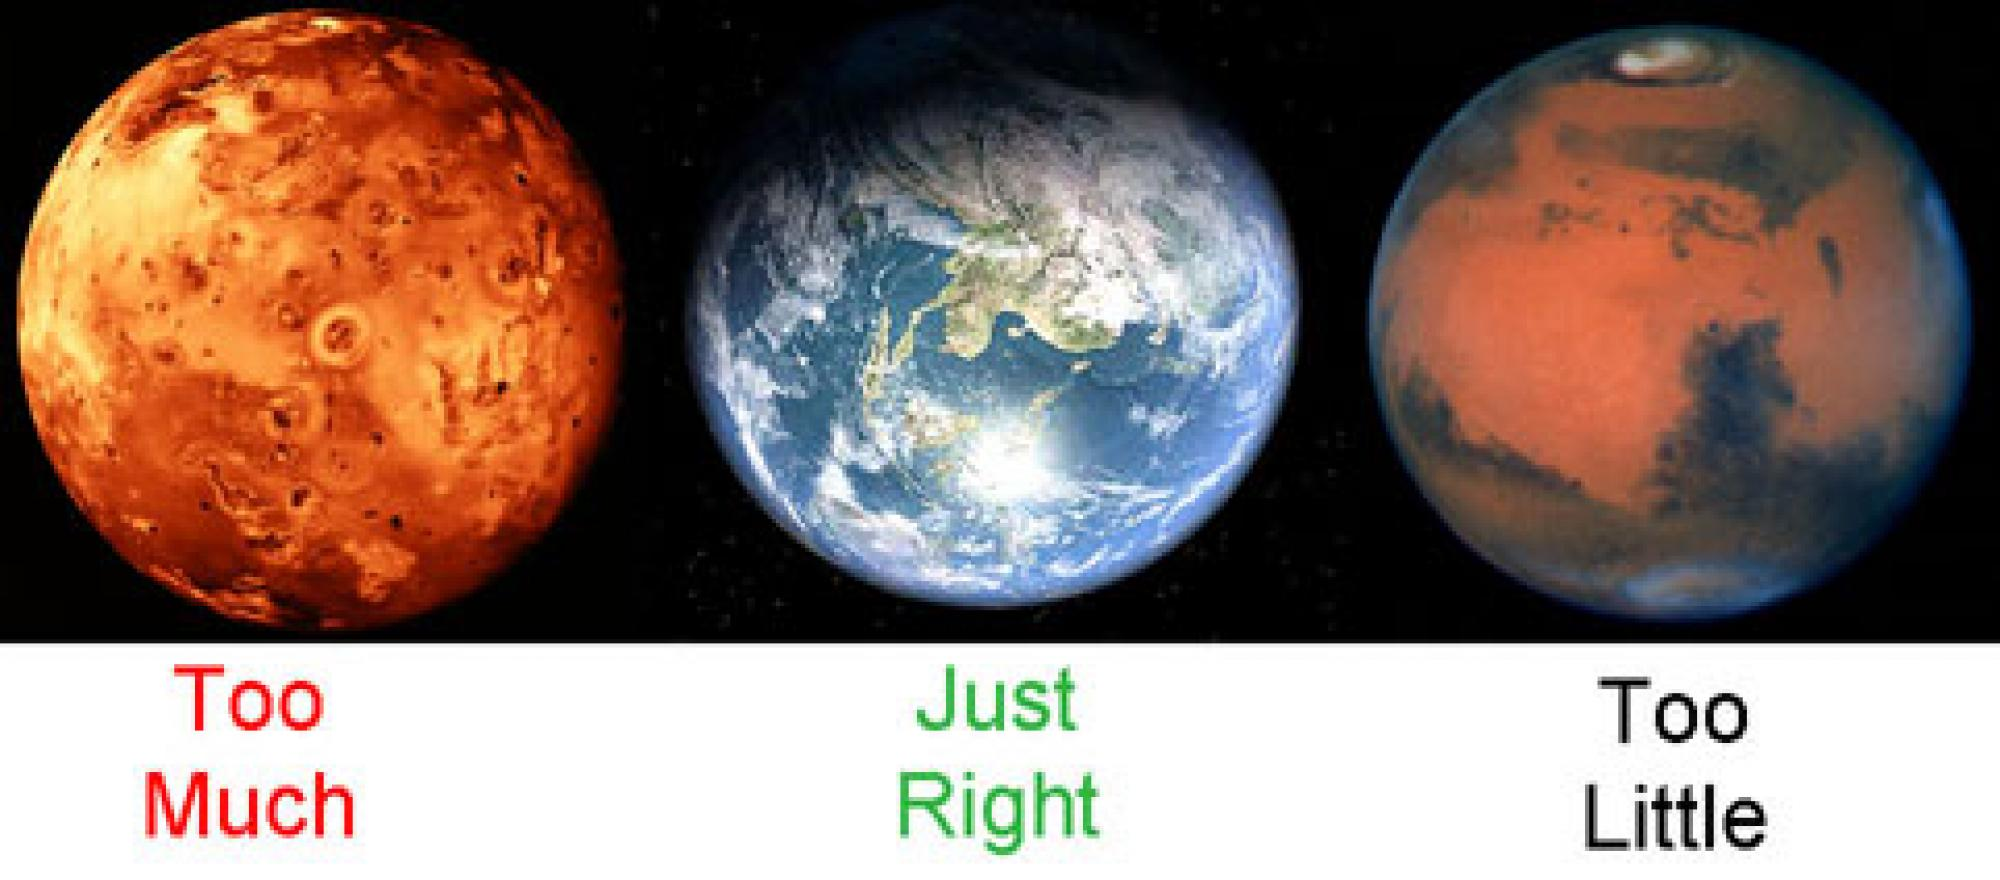 NASA images of Jupiter's moon, Io,  Earth  and Mars , respectively, illustrate worlds with too much, just enough and too little tidal heating to favor life. Internal heating can dramatically affect the suitability of a planet for life. Internal heating pr